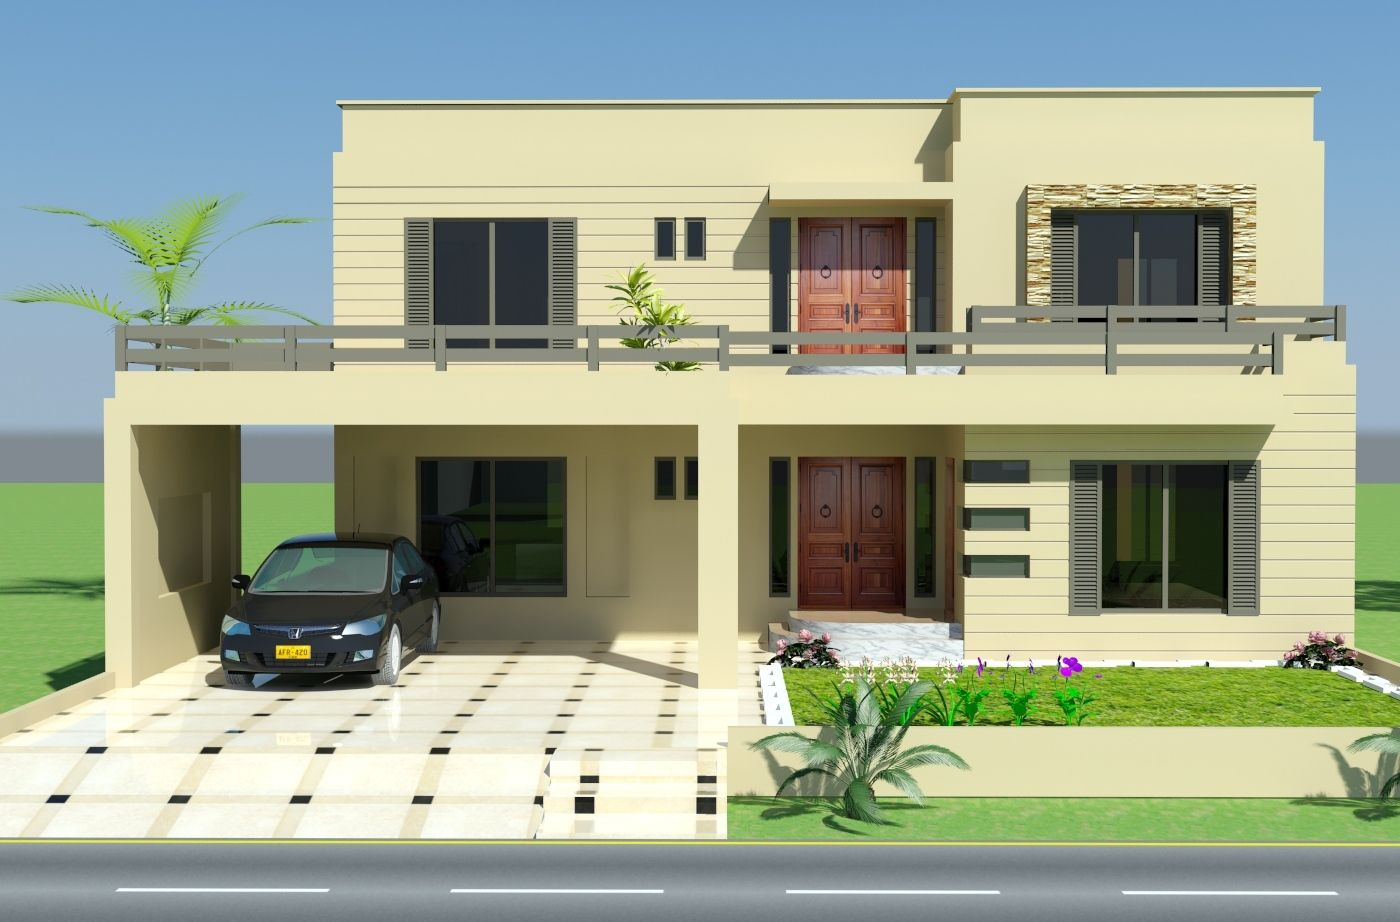 Exterior house design front elevation mi futura casa for Exterior design photos